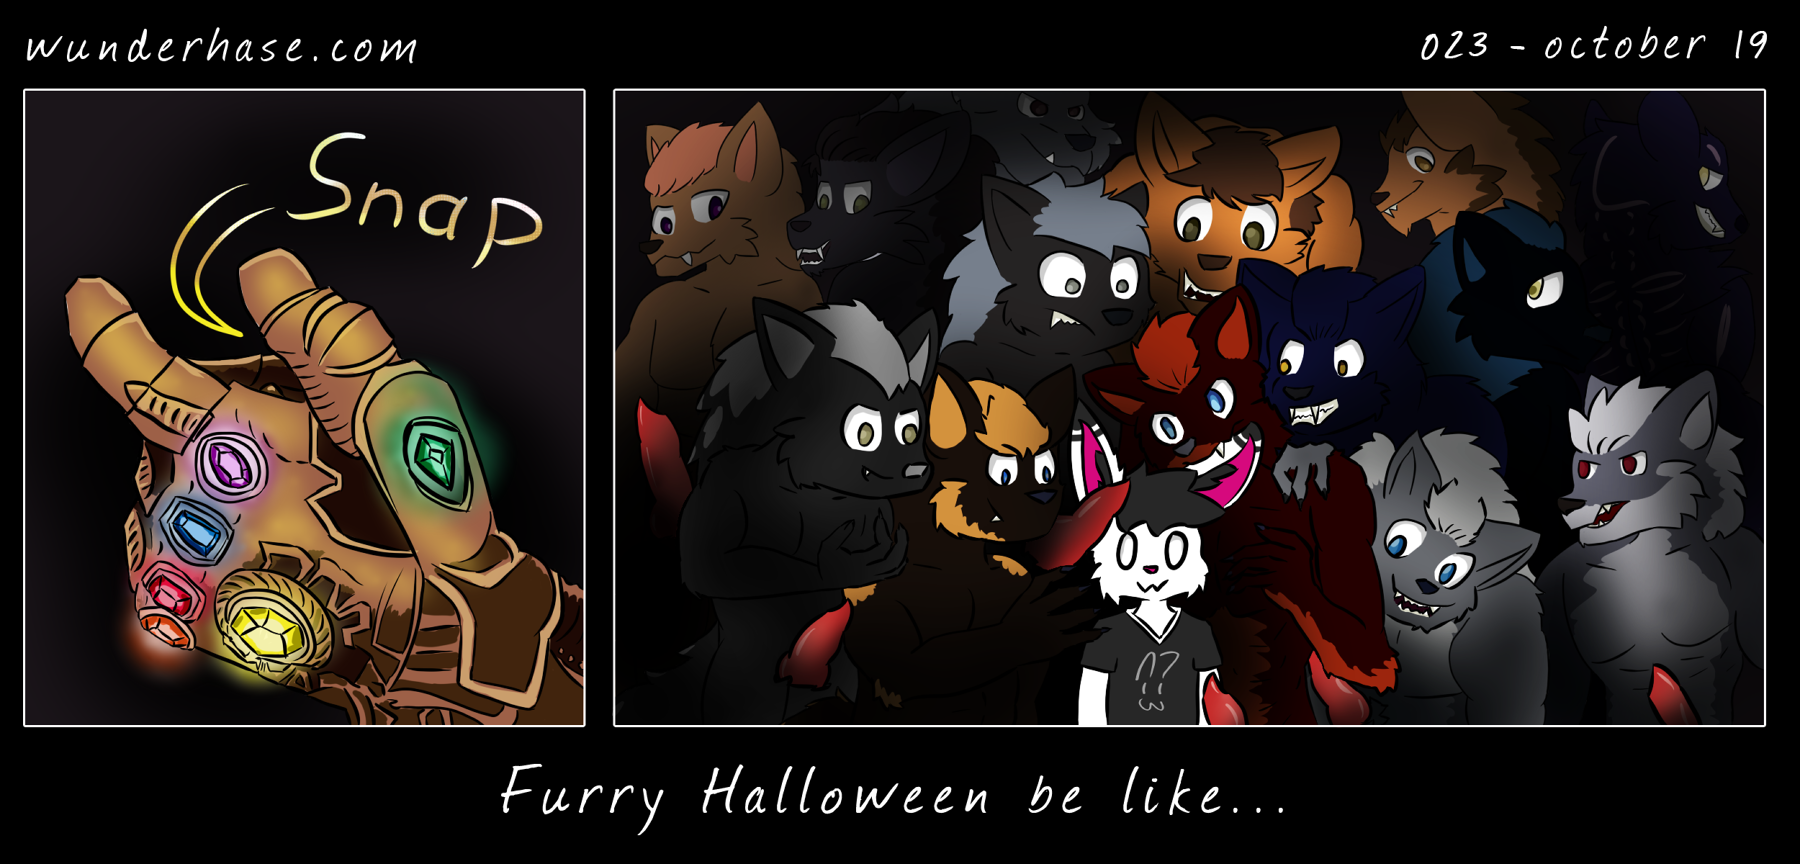 Sound: Snap Caption: Furry Halloween be like...